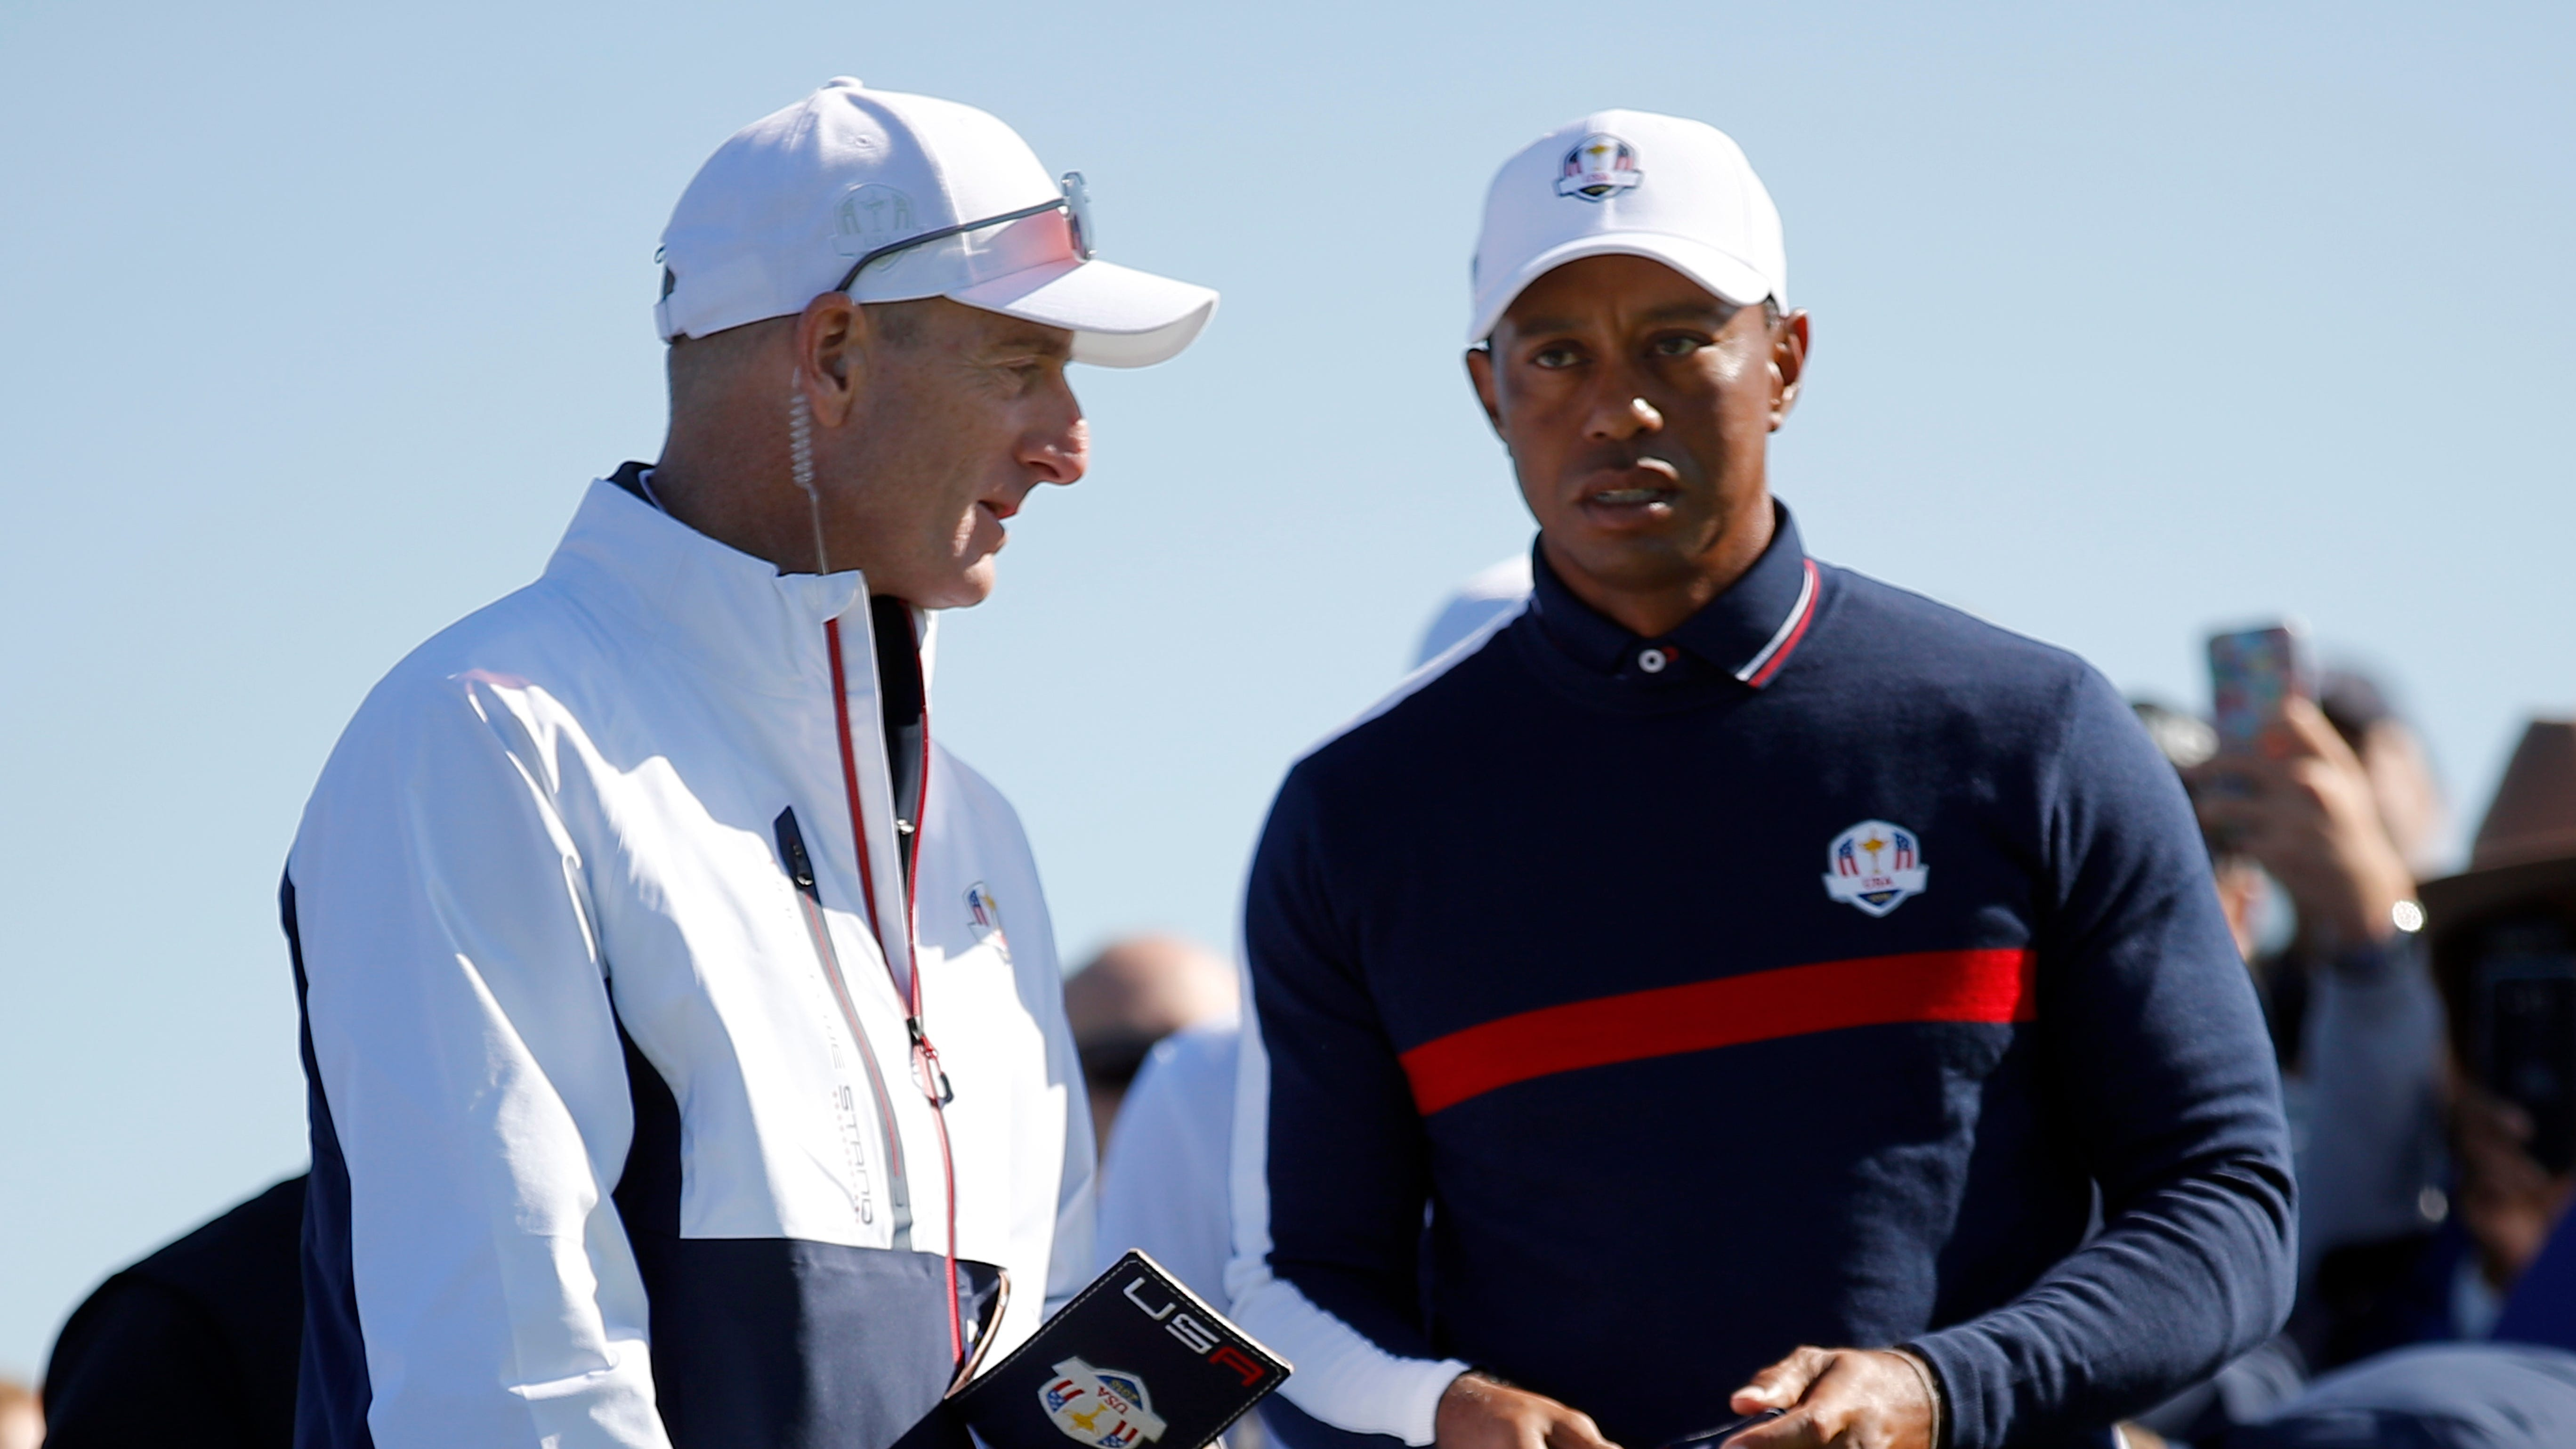 U.S. team captain Jim Furyk, left, stands with Tiger Woods on the ninth tee during a practice session at Le Golf National in Saint-Quentin-en-Yvelines, France, at the Ryder Cup.